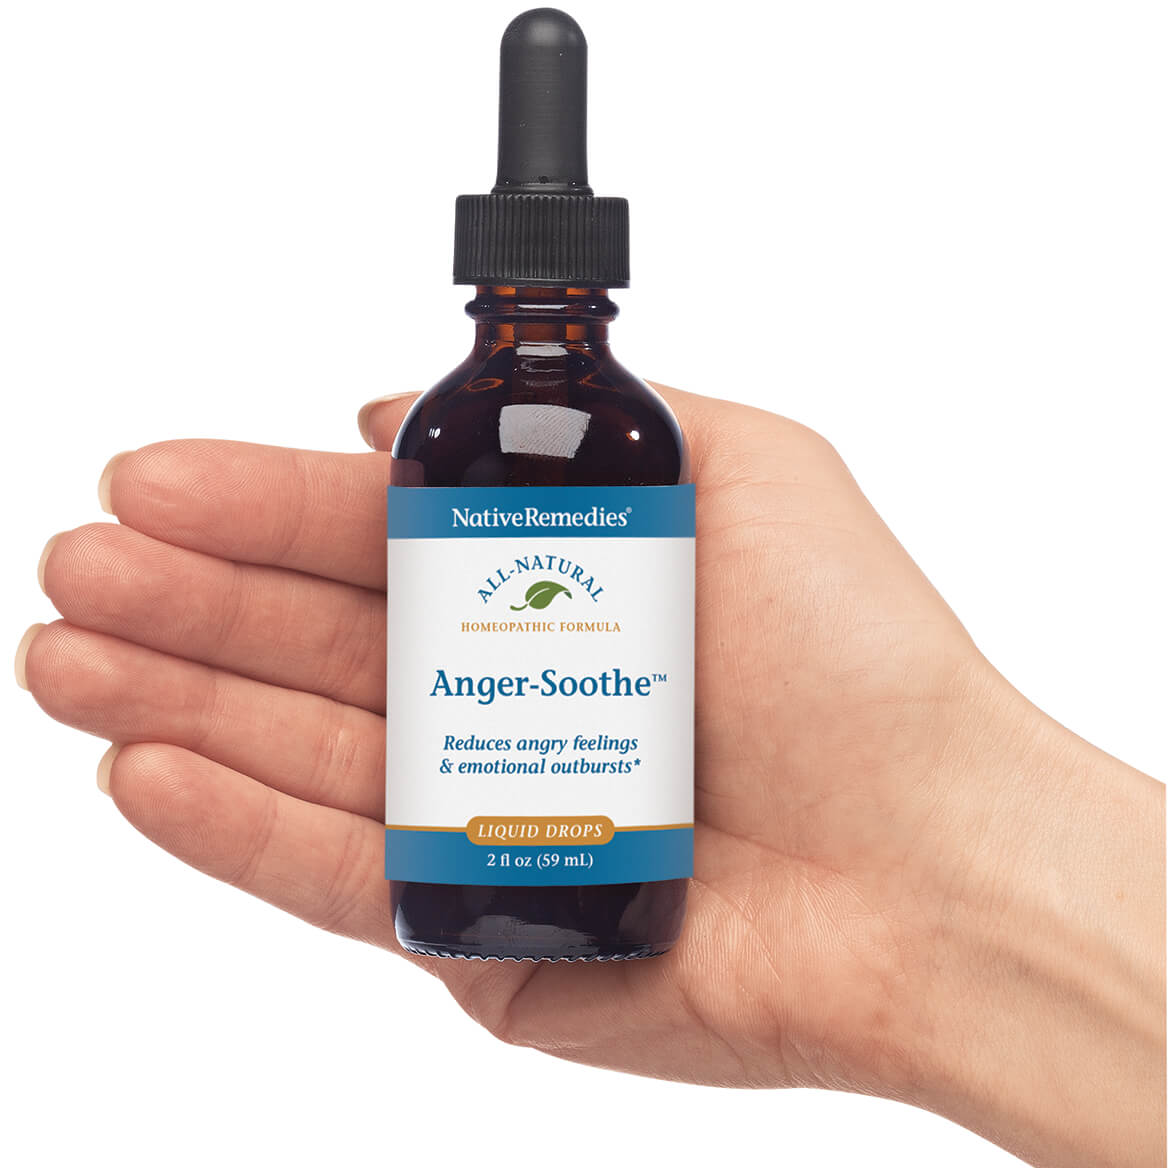 Anger-Soothe™ for Temper Control-351874